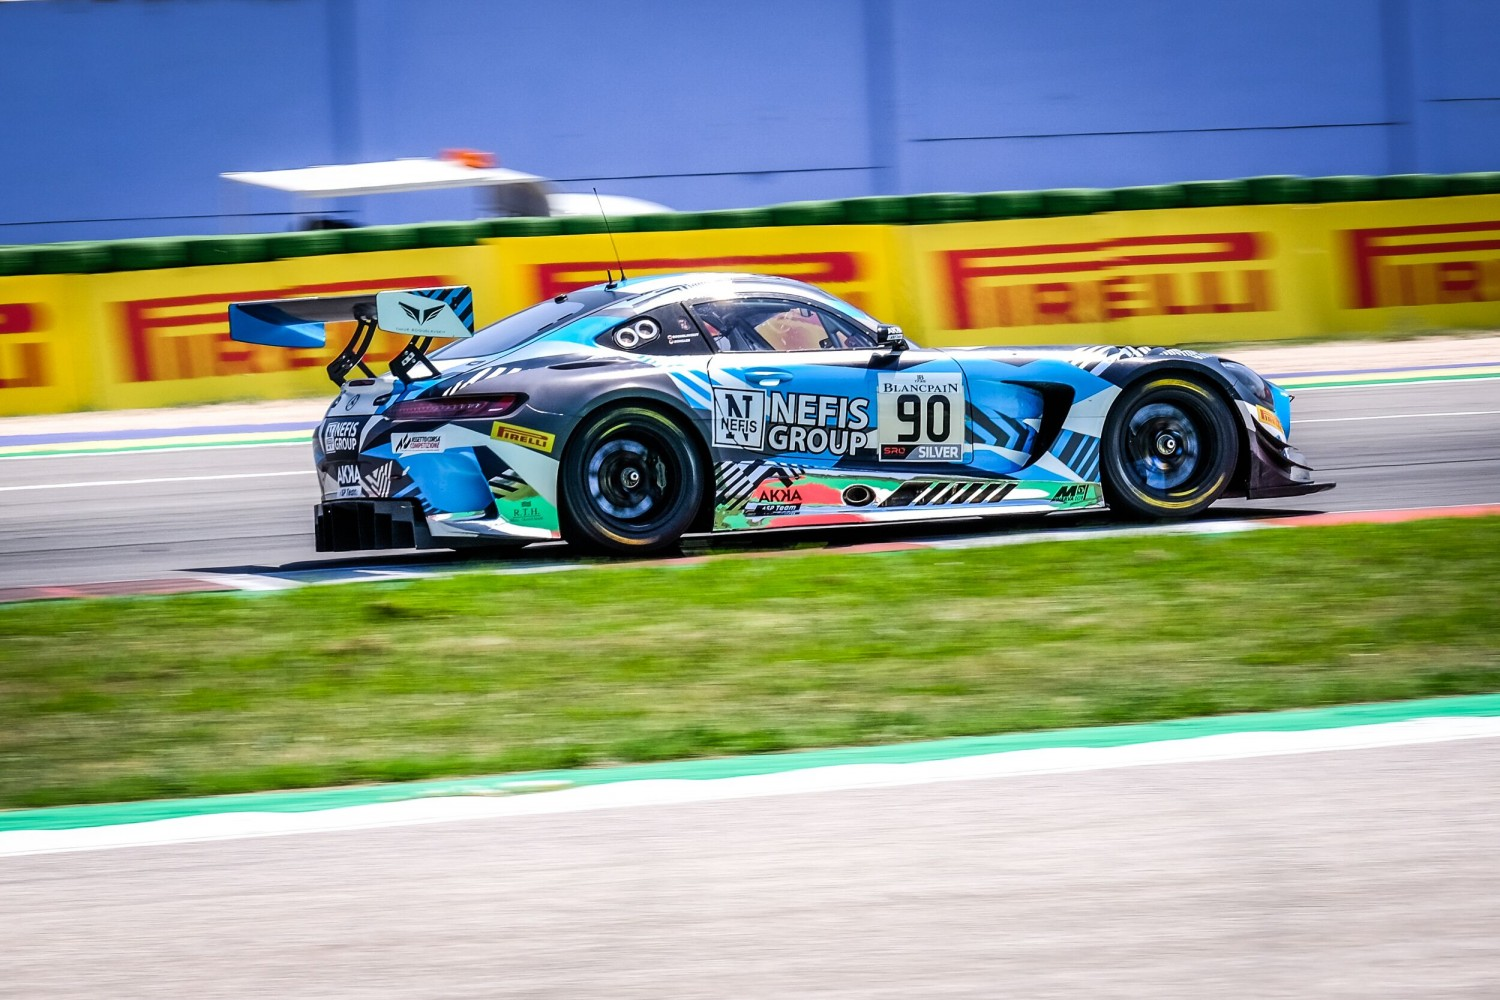 AKKA ASP leads the way at Misano as #90 Mercedes-AMG sets the pace in free practice